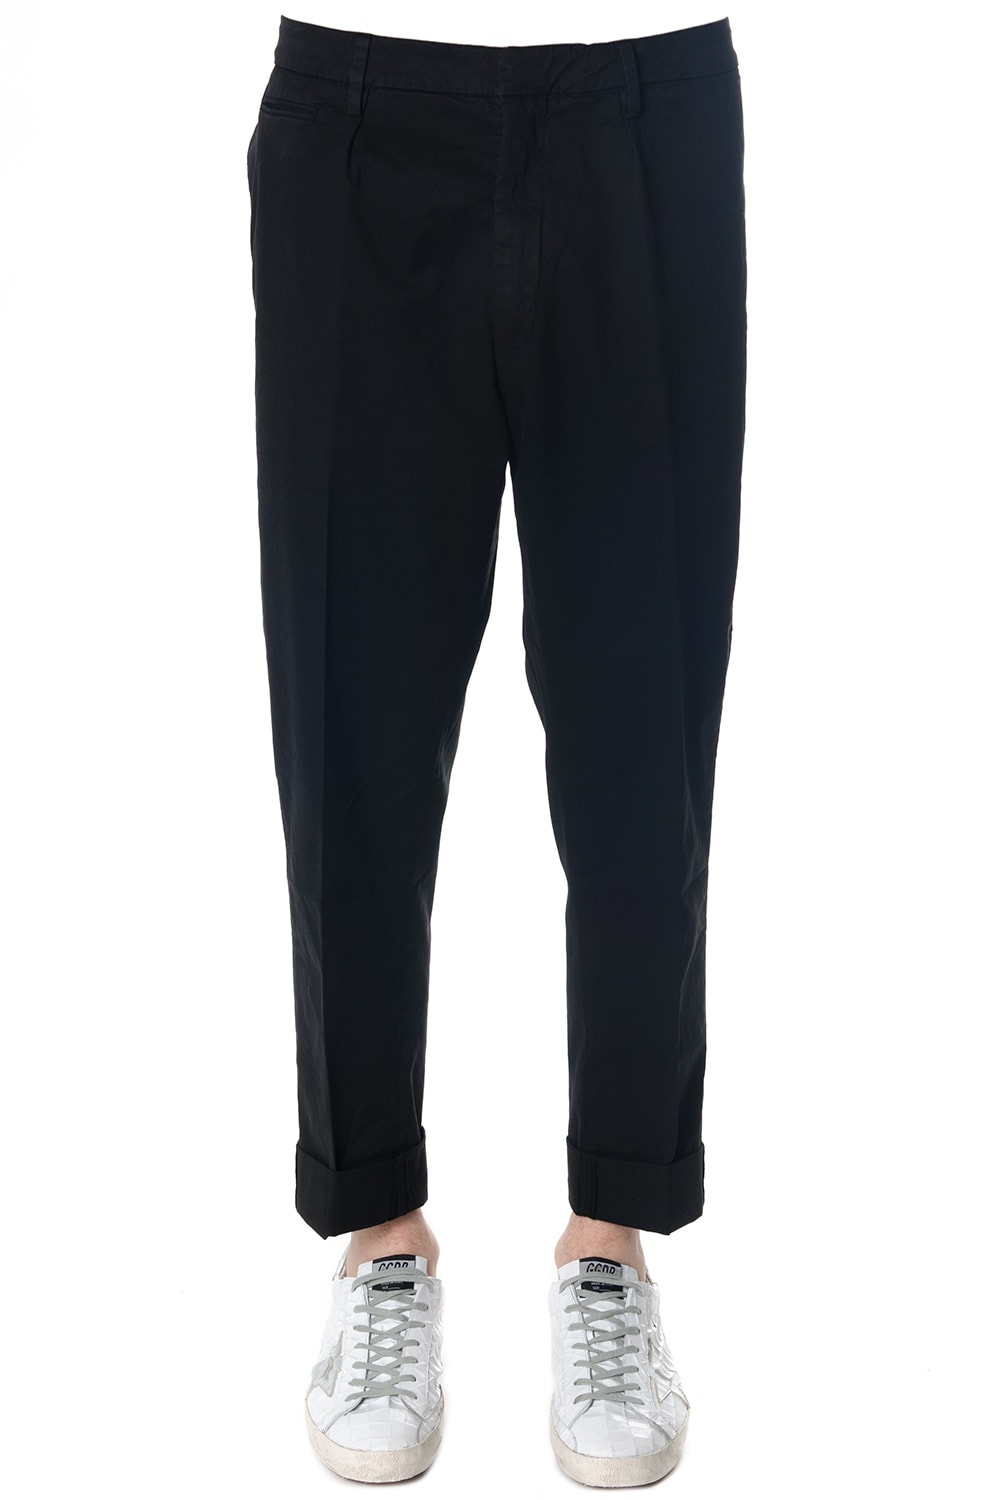 Dondup Frankie Stretch Cotton Trousers